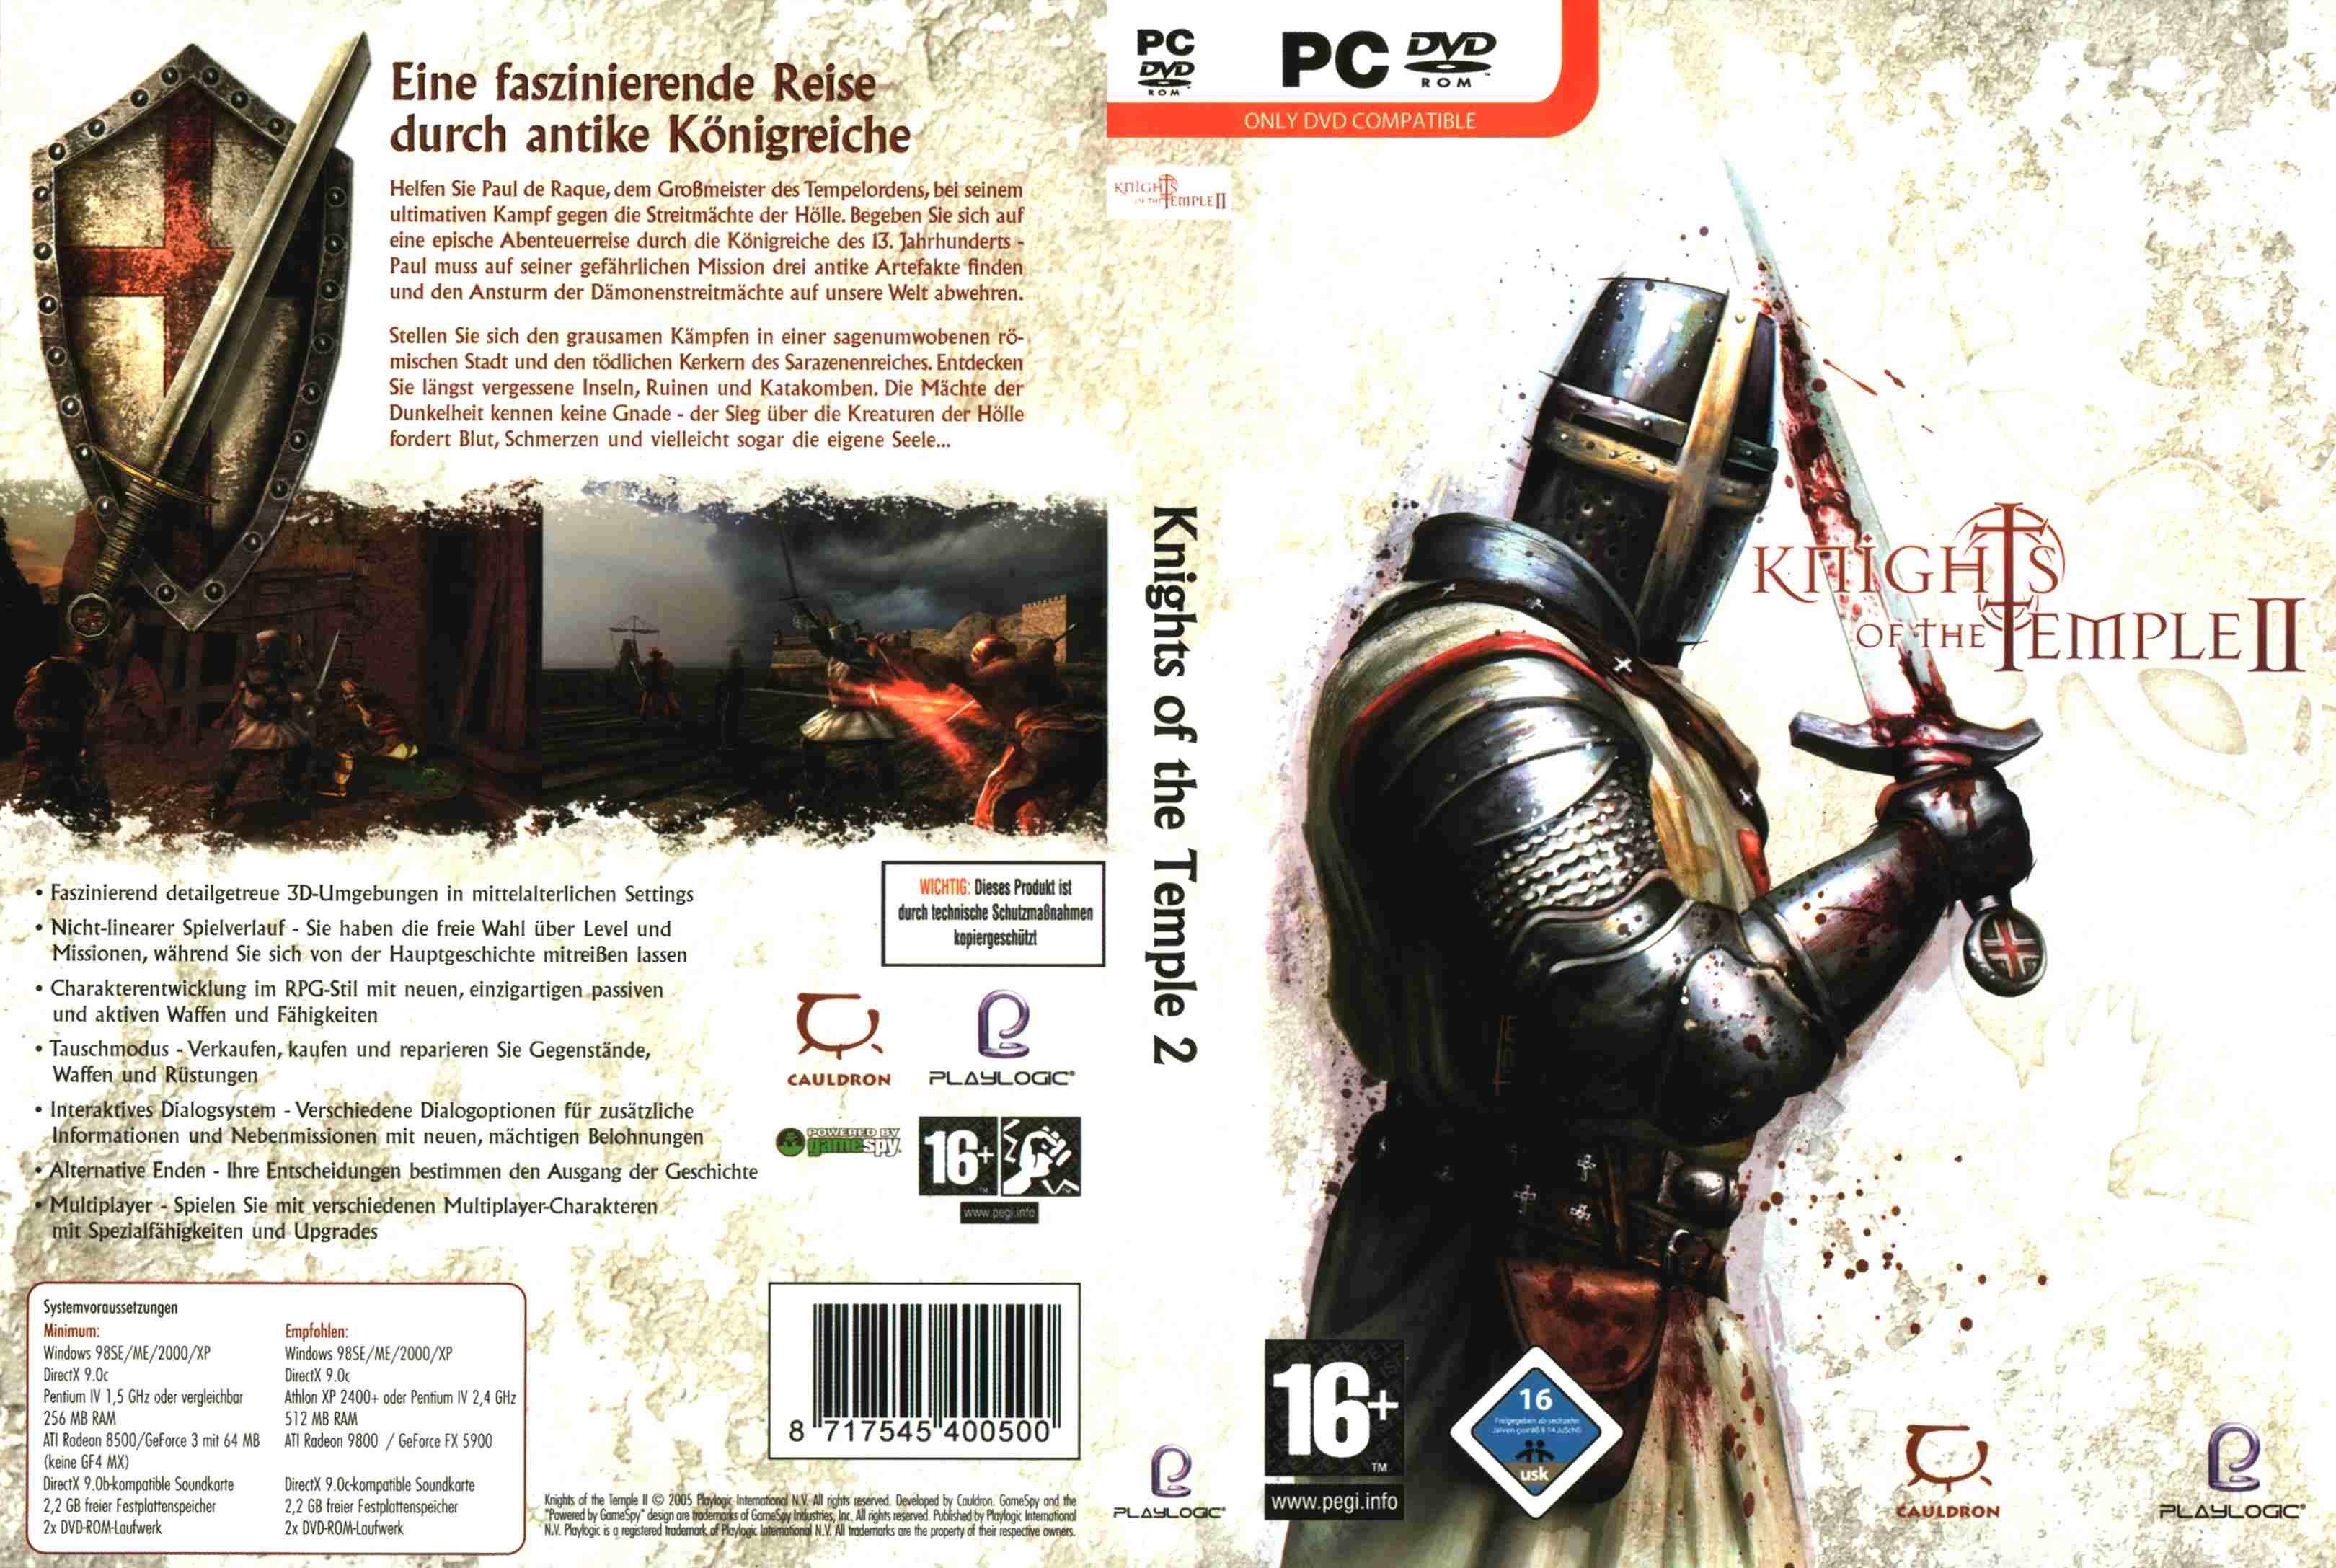 knights of the temple 2 pc games dvd | PC Covers | Cover